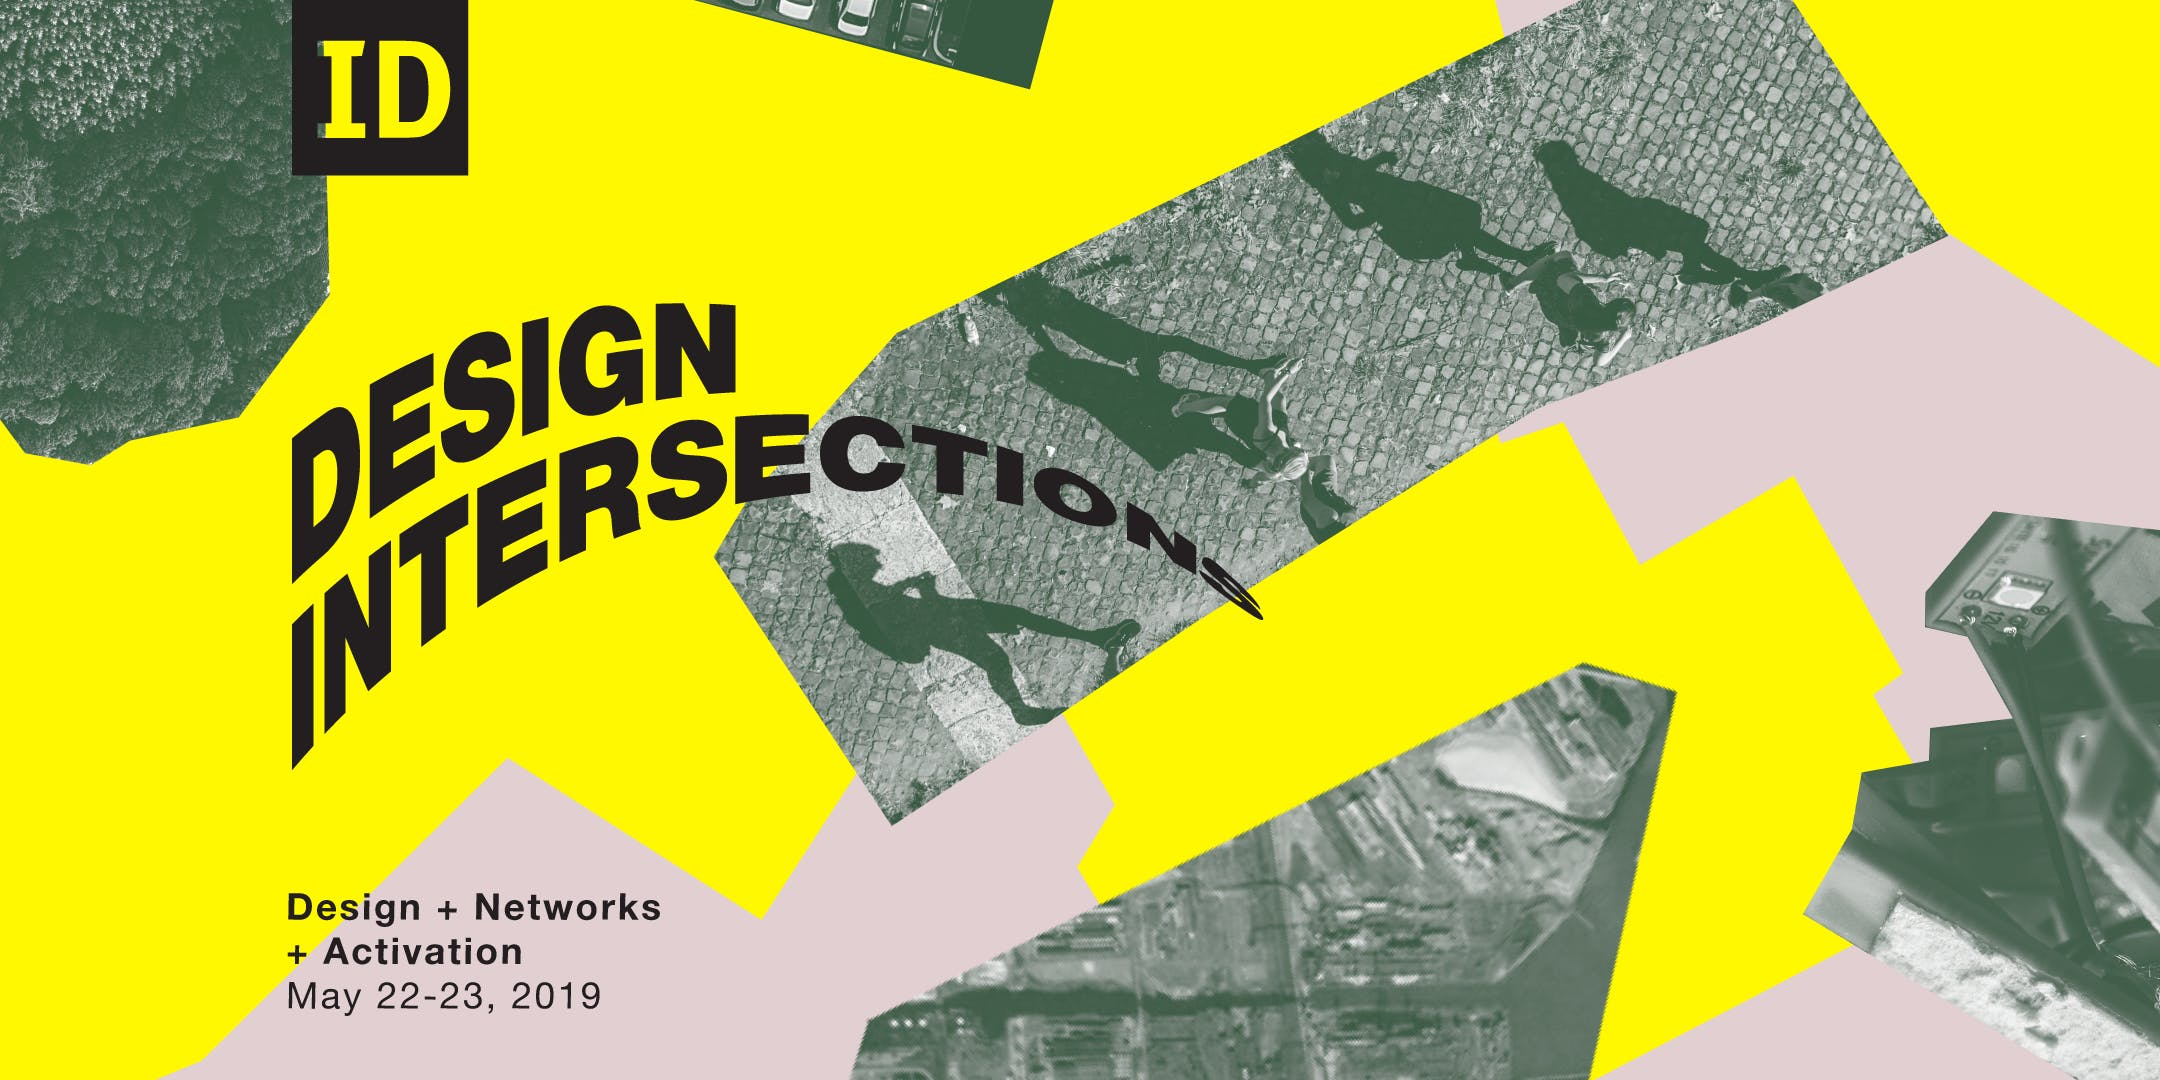 Design Intersections 2019: Design + Networks + Activation